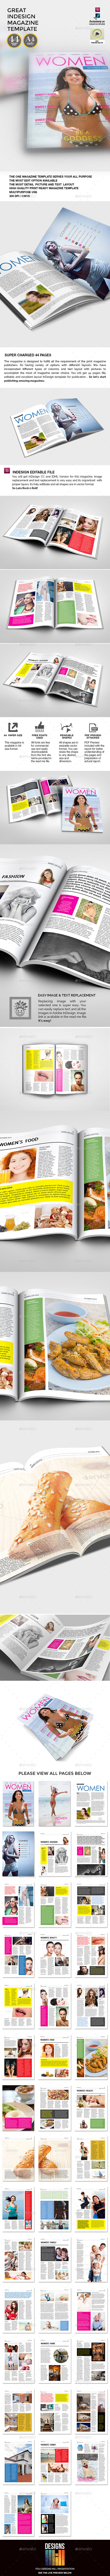 GraphicRiver Great InDesign Magazine Template 9327689